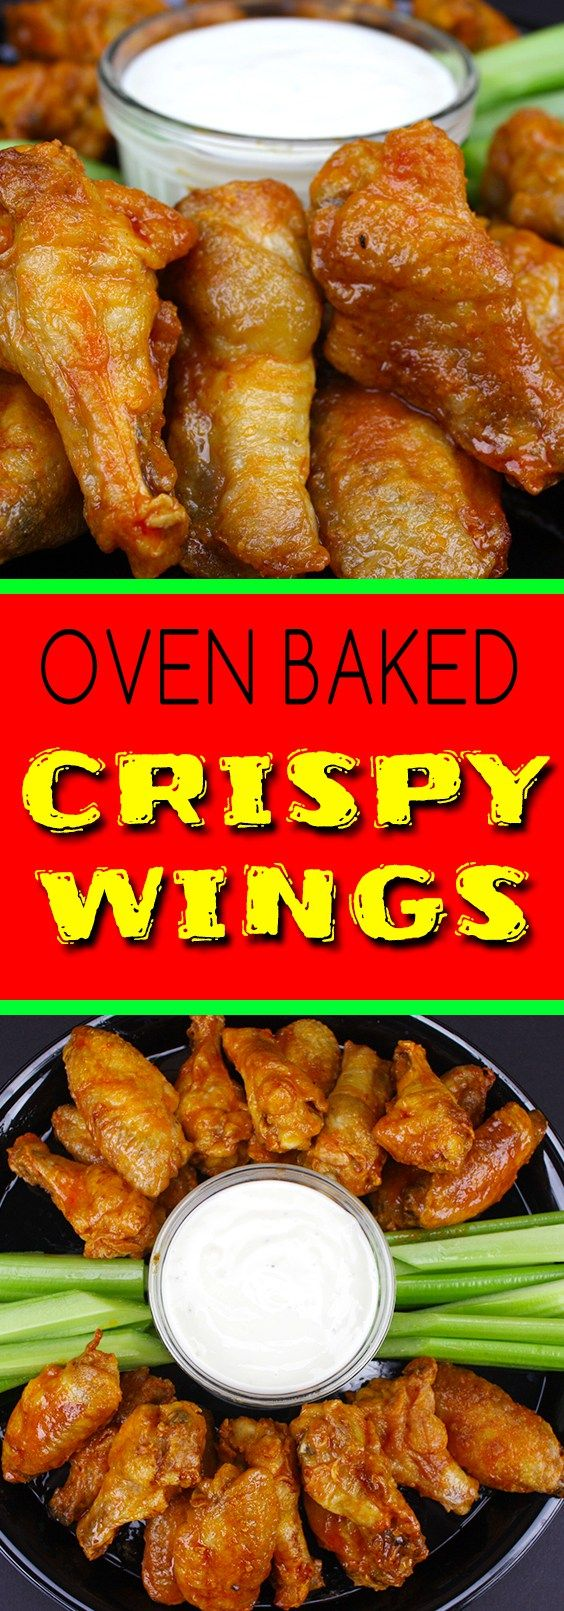 Crispy Oven Baked Chicken Wings - The trick to extra crispy oven baked wings! No more deep frying.